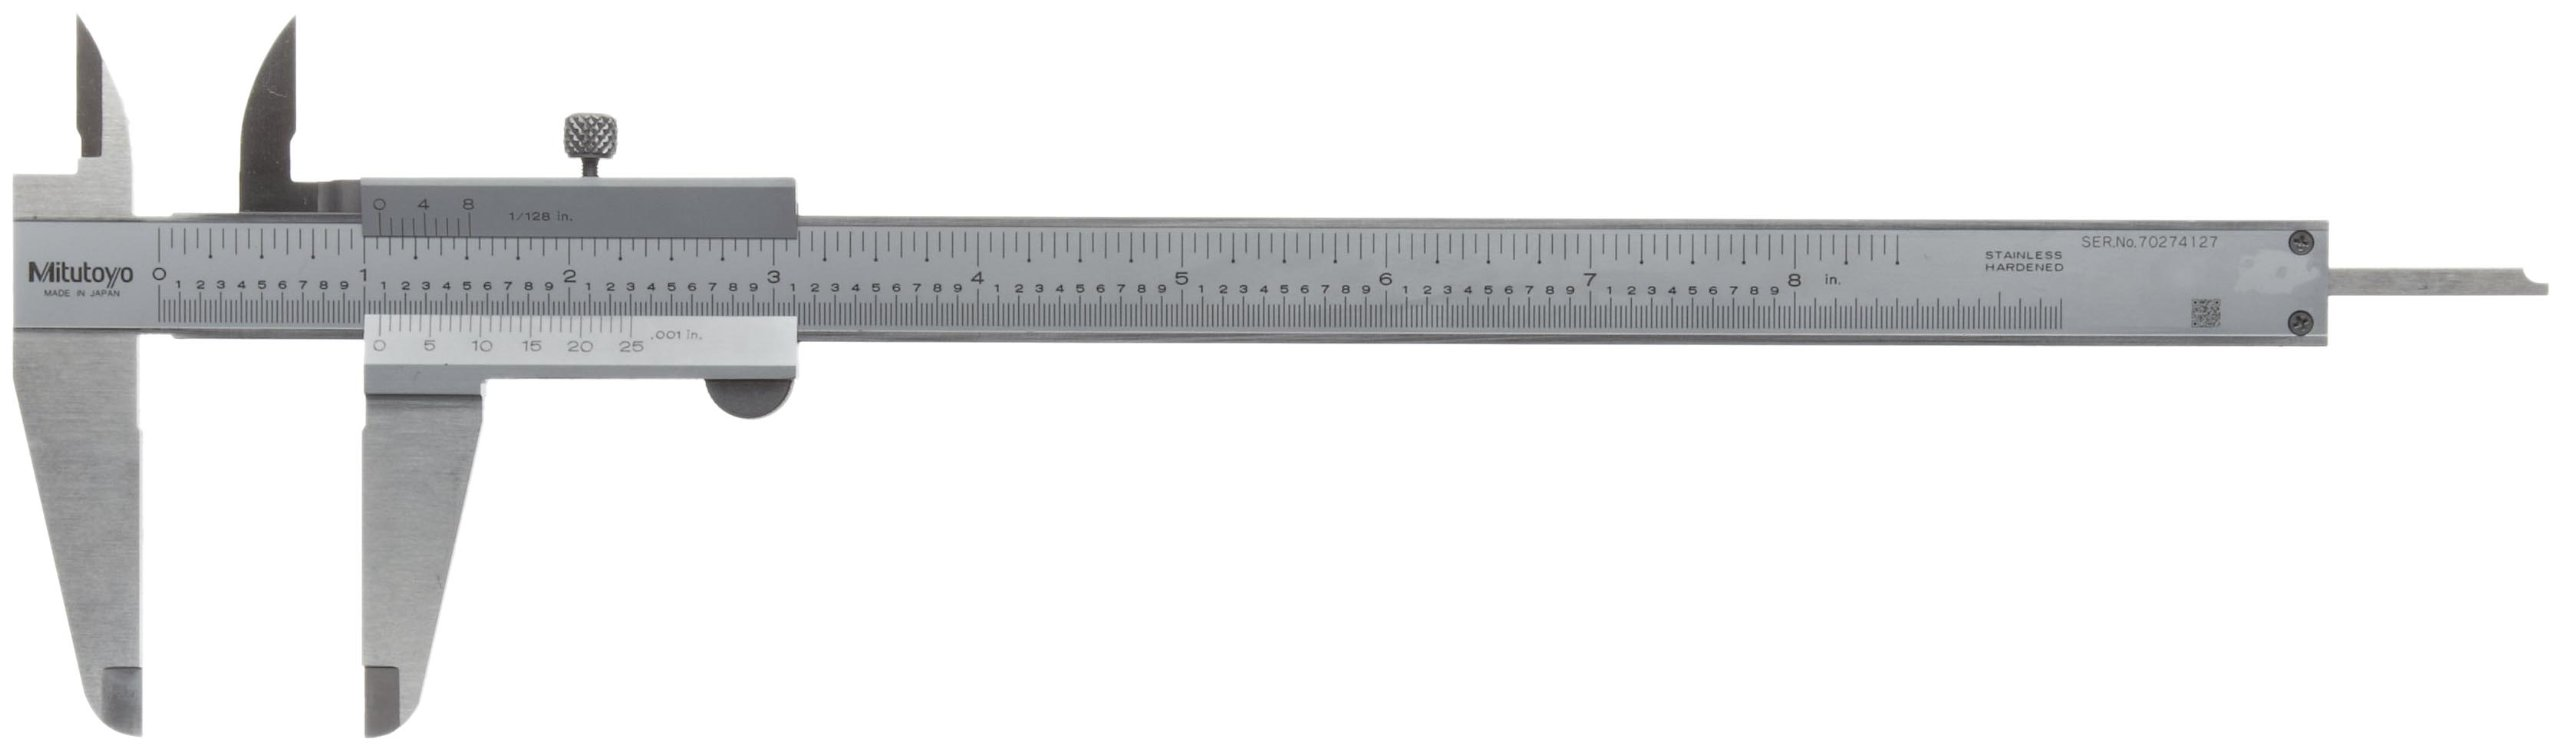 Mitutoyo 530-116 Vernier Caliper, Stainless Steel, 0-8'' Range, +/-0.0015'' Accuracy, 0.0078'' Resolution